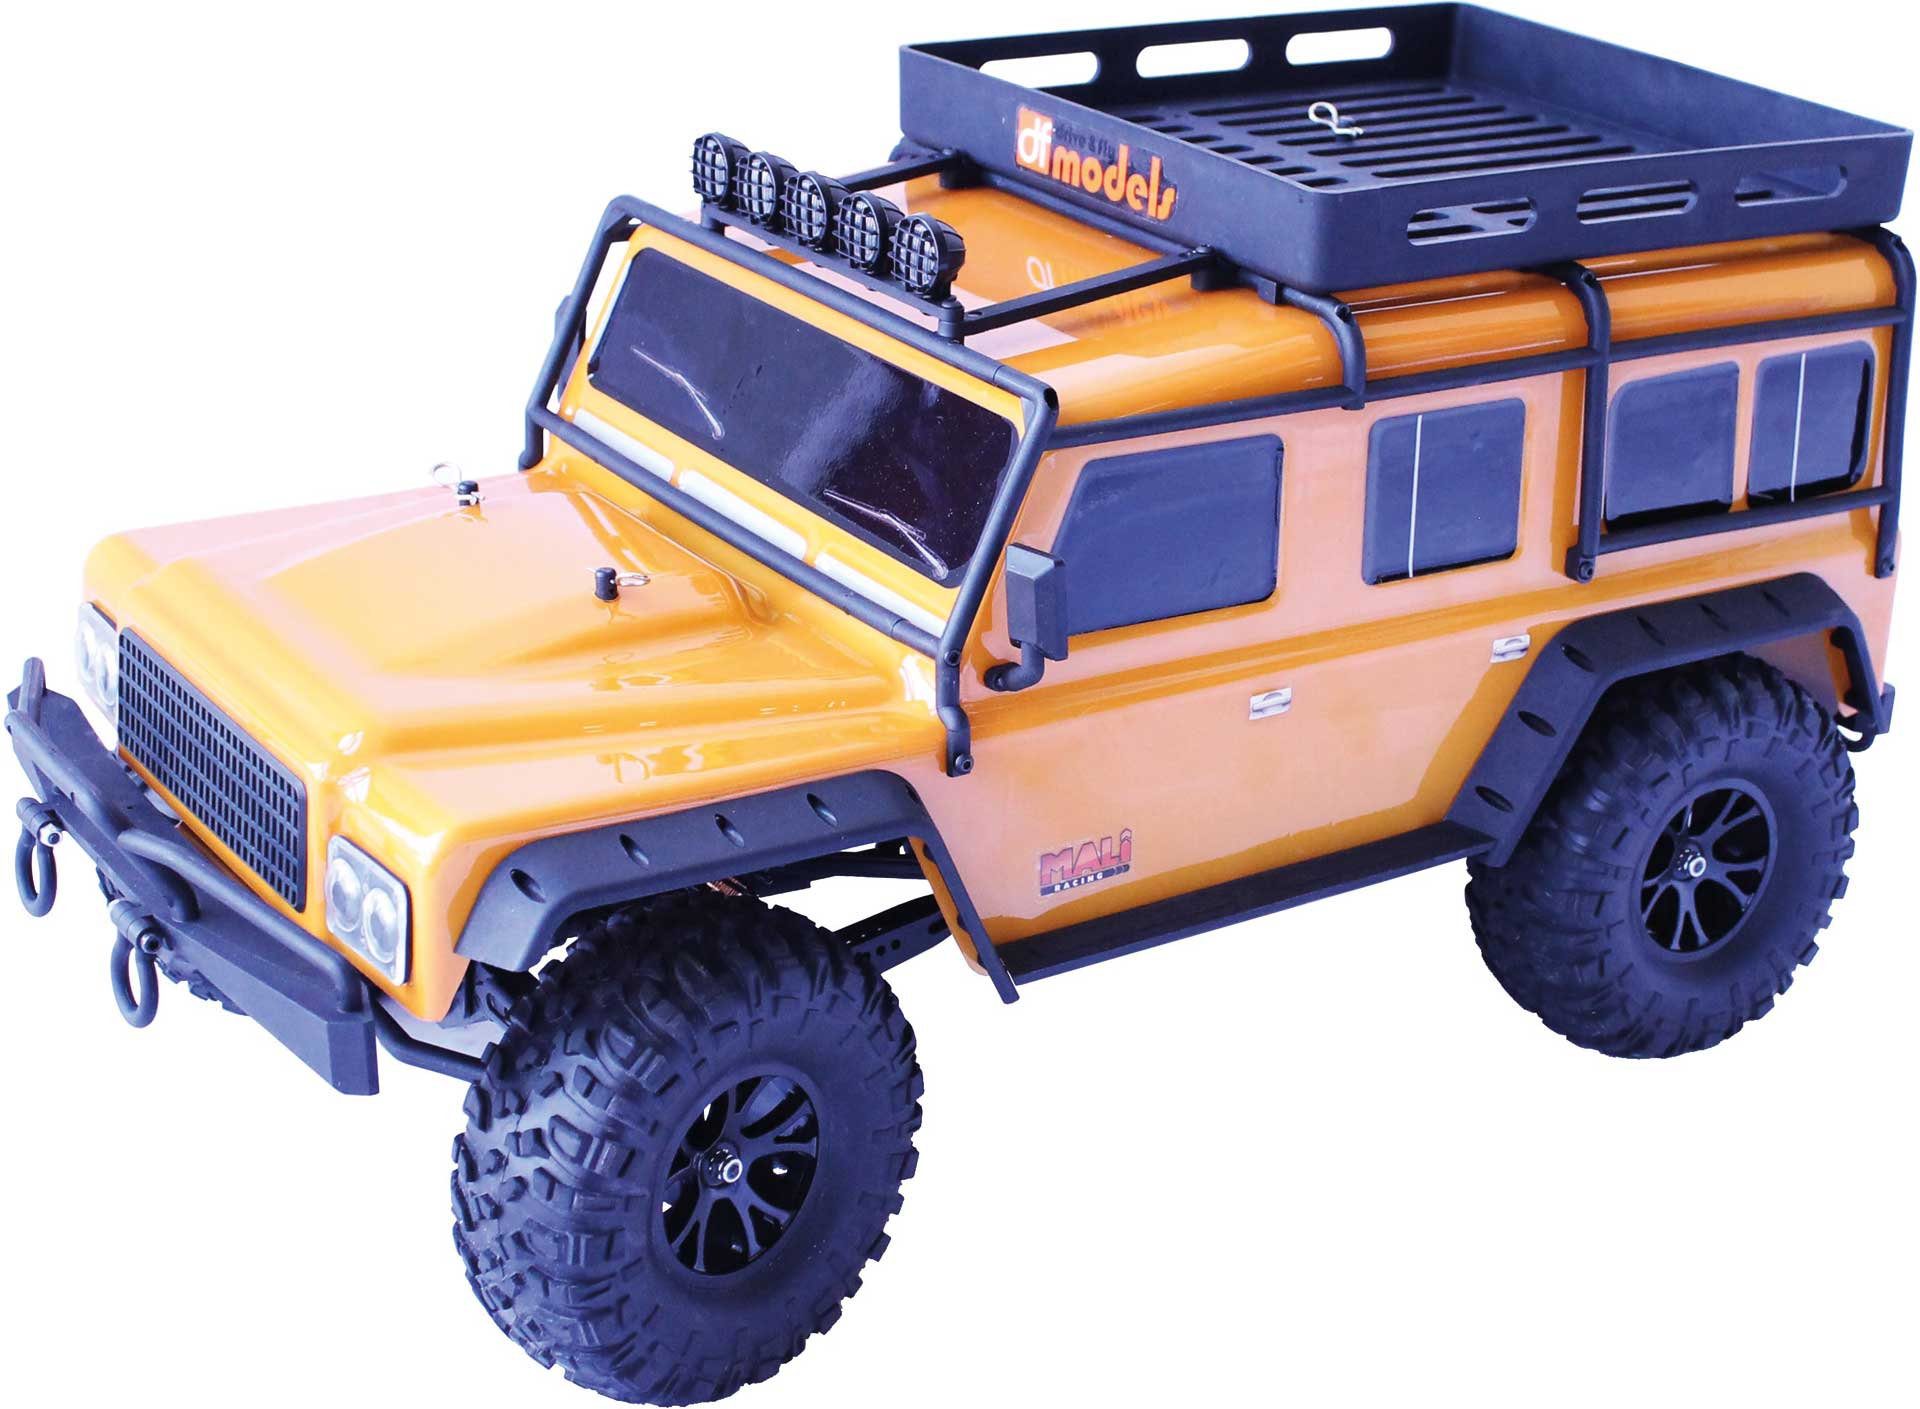 DRIVE & FLY MODELS DF-4J Crawler ORANGE 2-speed LED - 2021 Edition